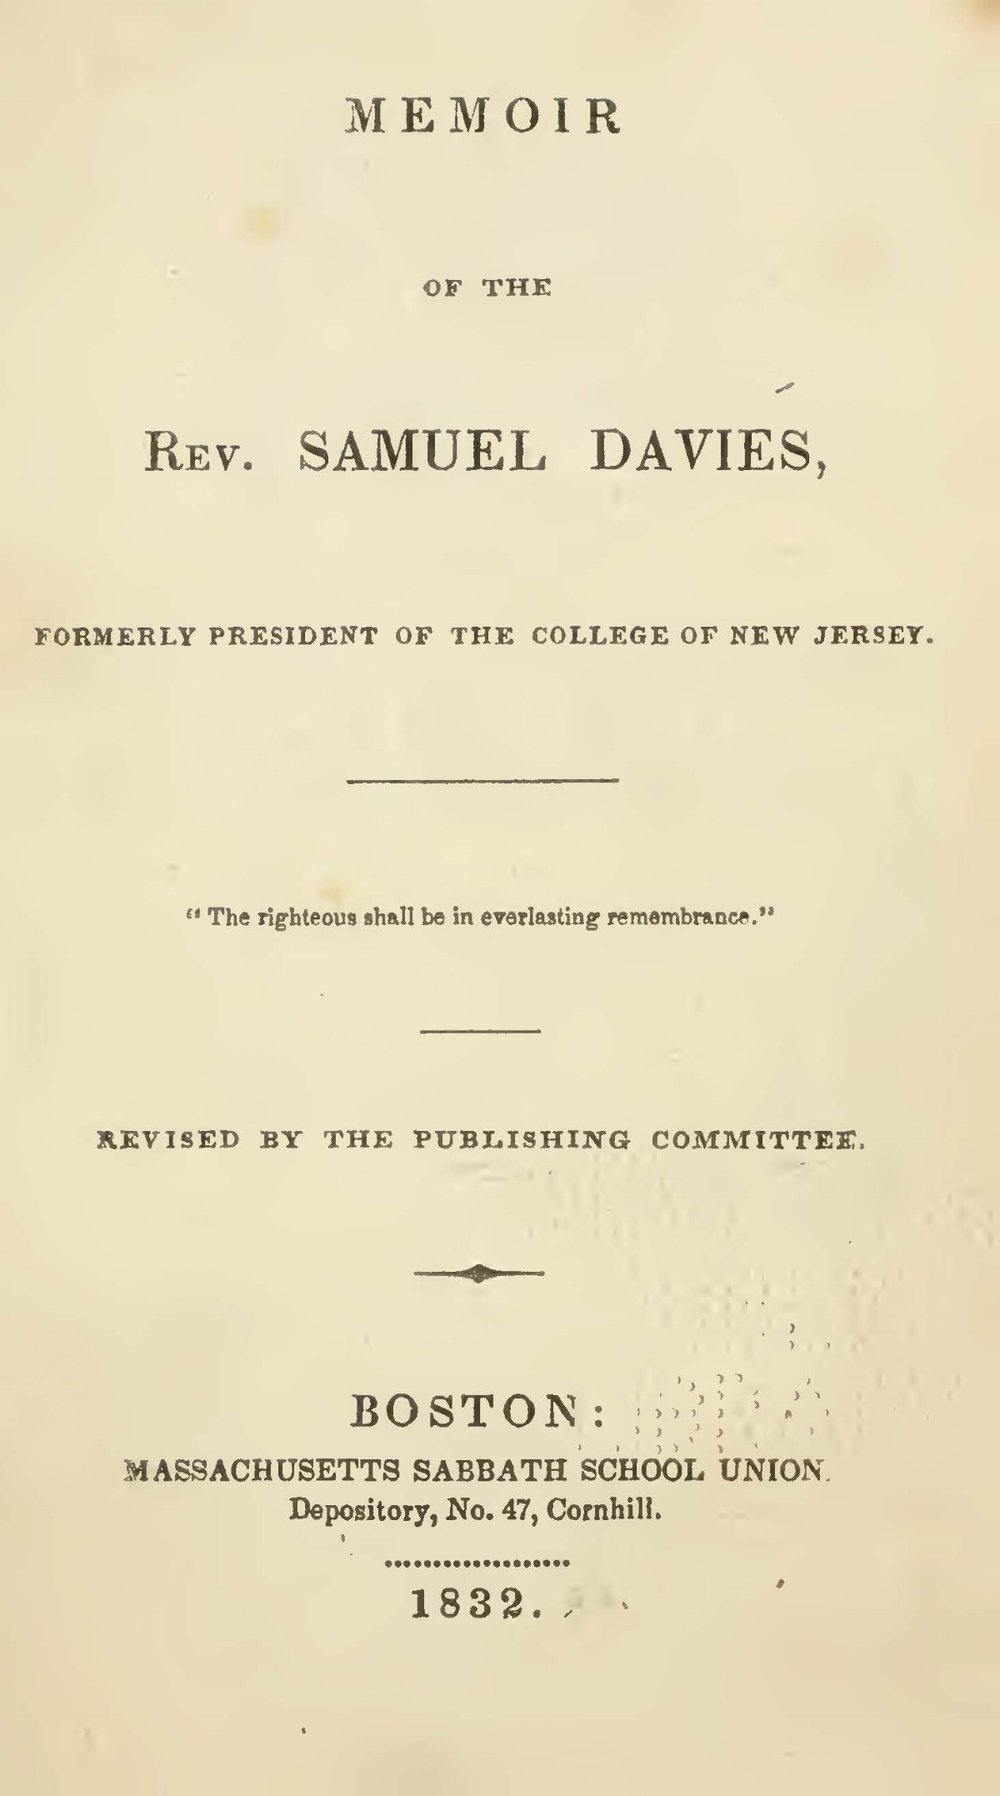 At the time of its publication, this biography of Samuel Davies by the Massachusetts Sabbath School Union was the first and only such study of his life. It is included here, though not written by Davies, for its historical value.